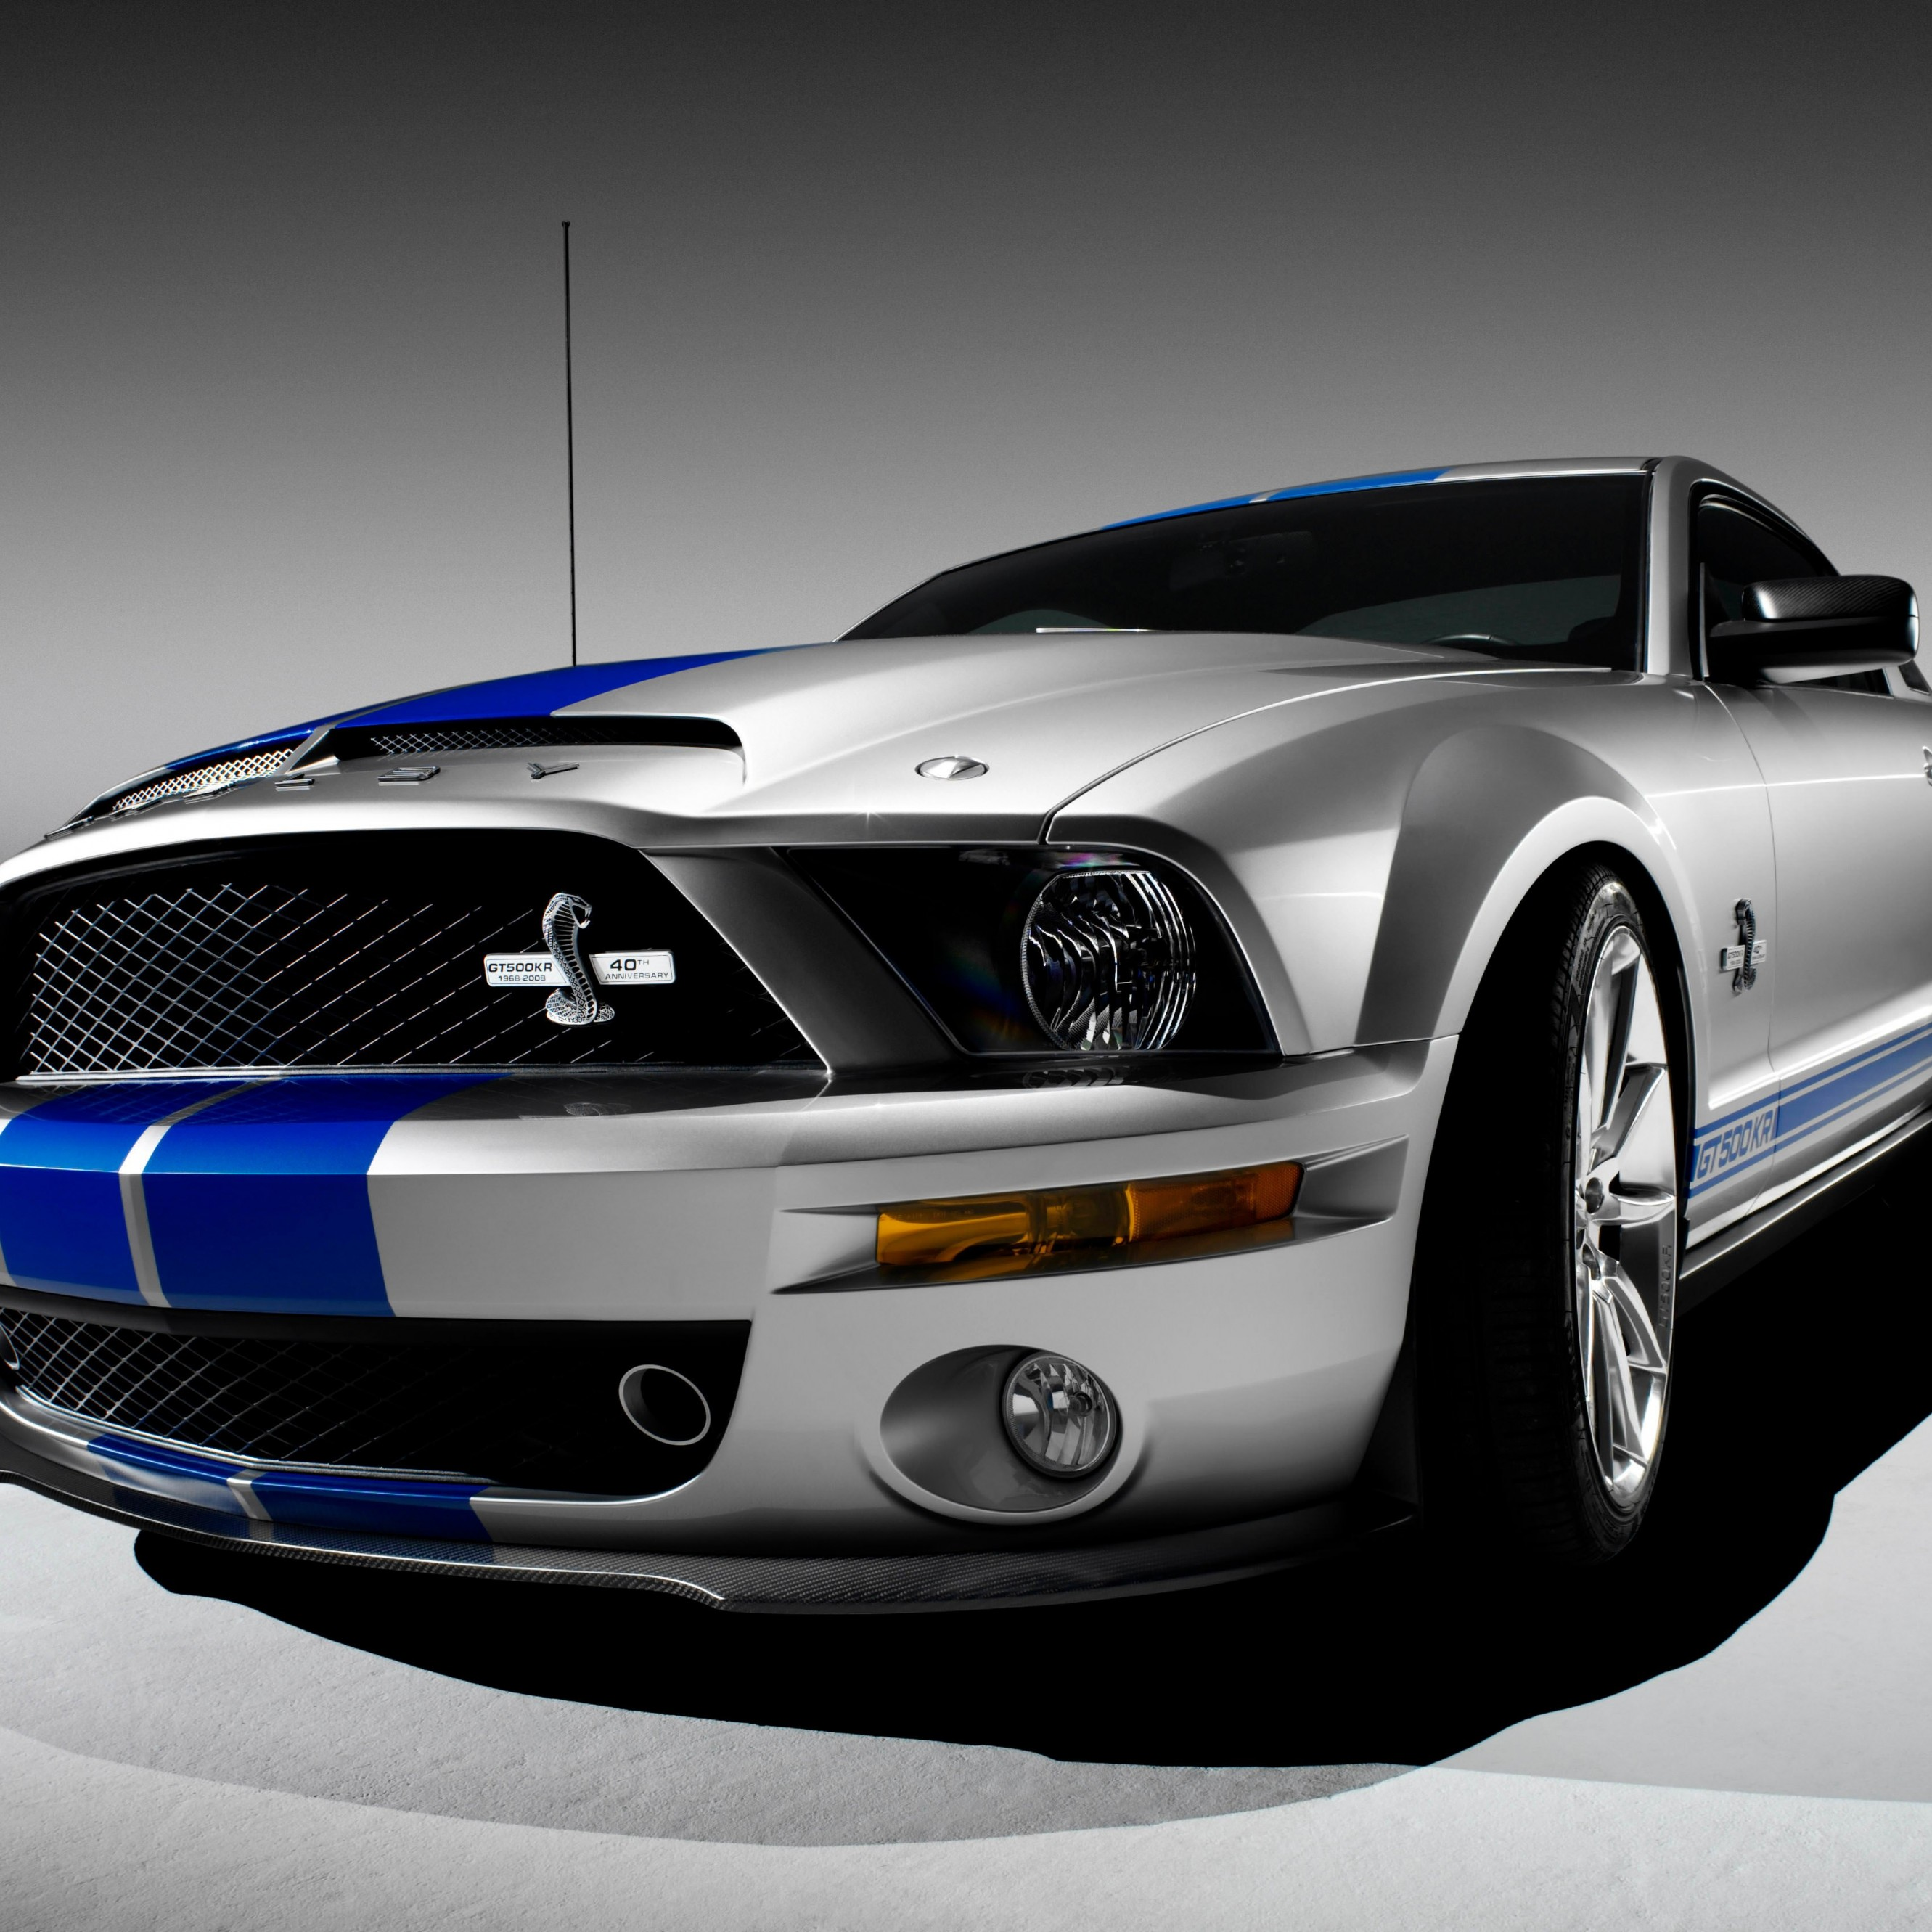 Download Shelby Mustang GT500KR HD Wallpaper For IPhone 6